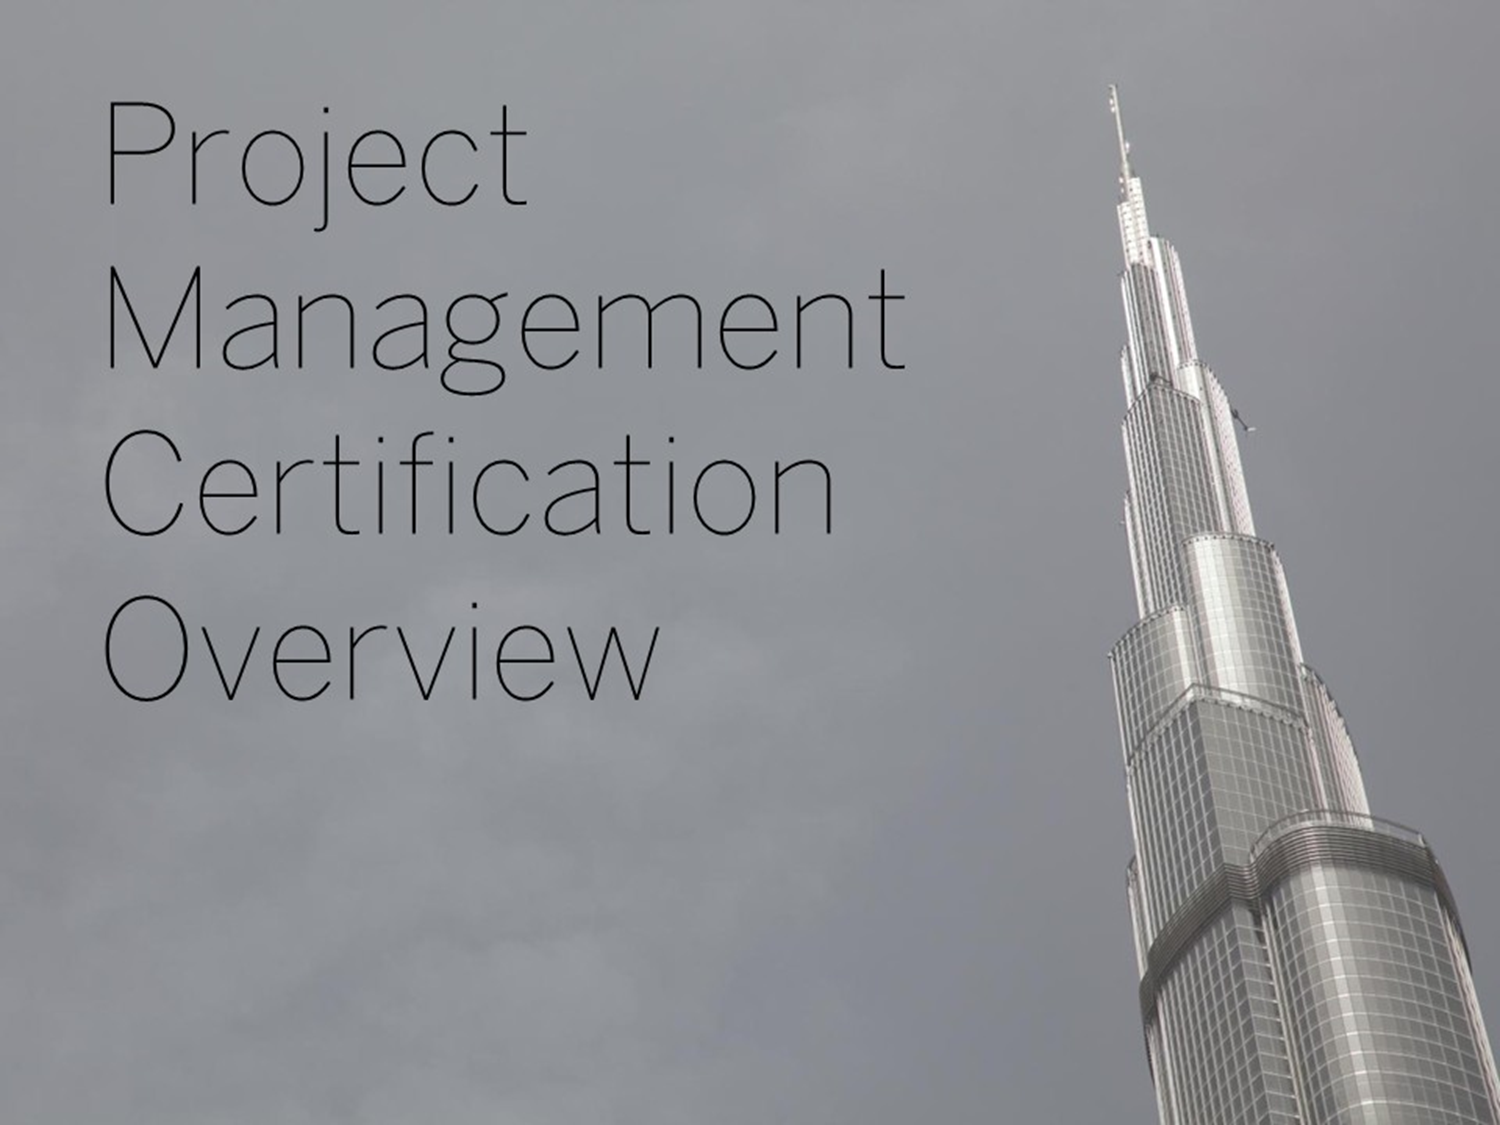 This deck provides an introduction to Project Management and how to get the PMP Certification.